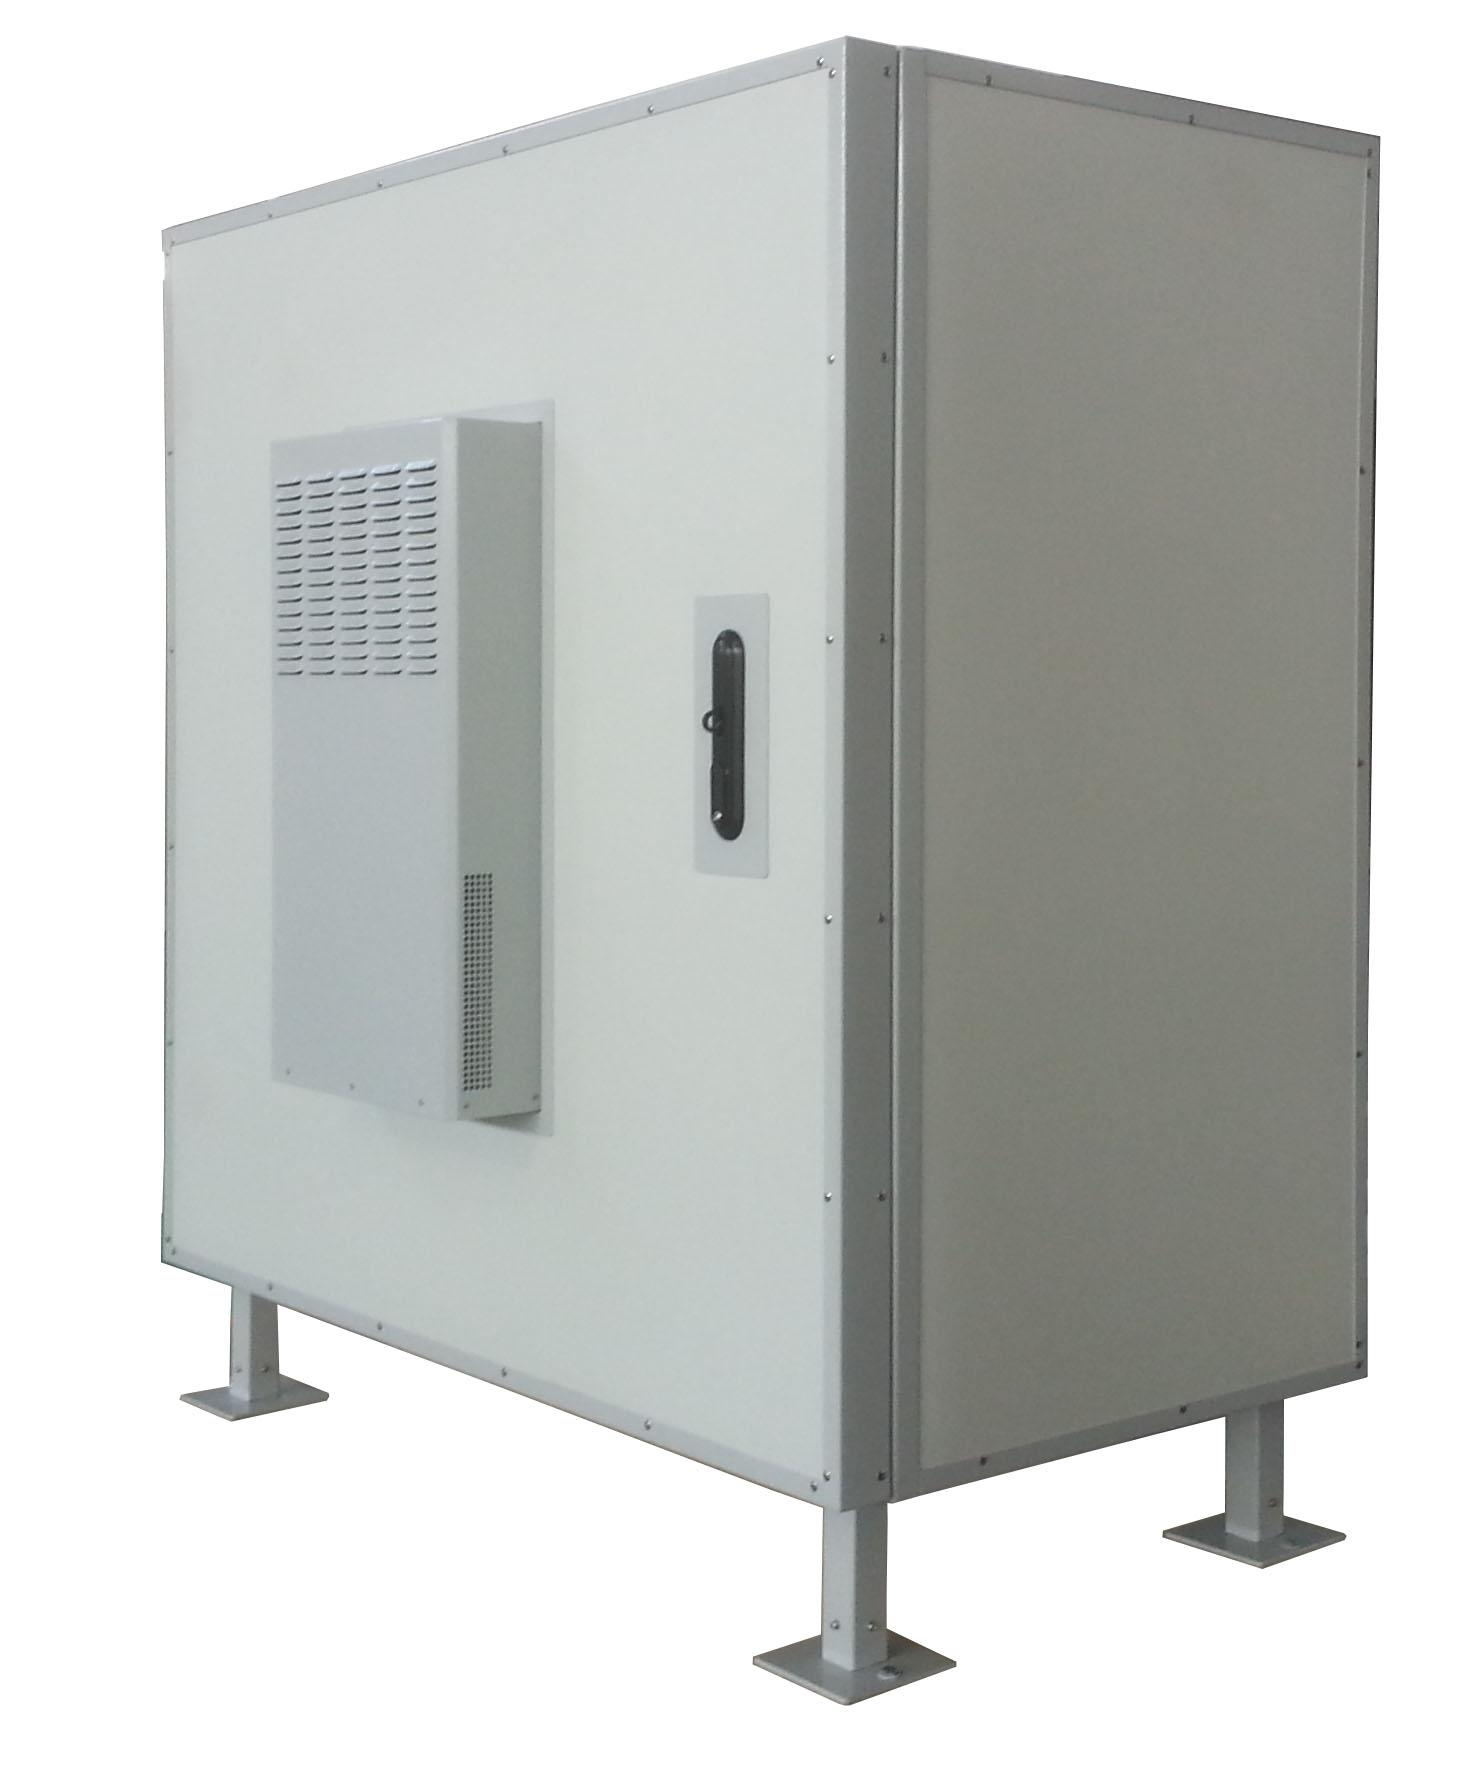 Industrial power cabinet non condensing water AC air conditioner 3